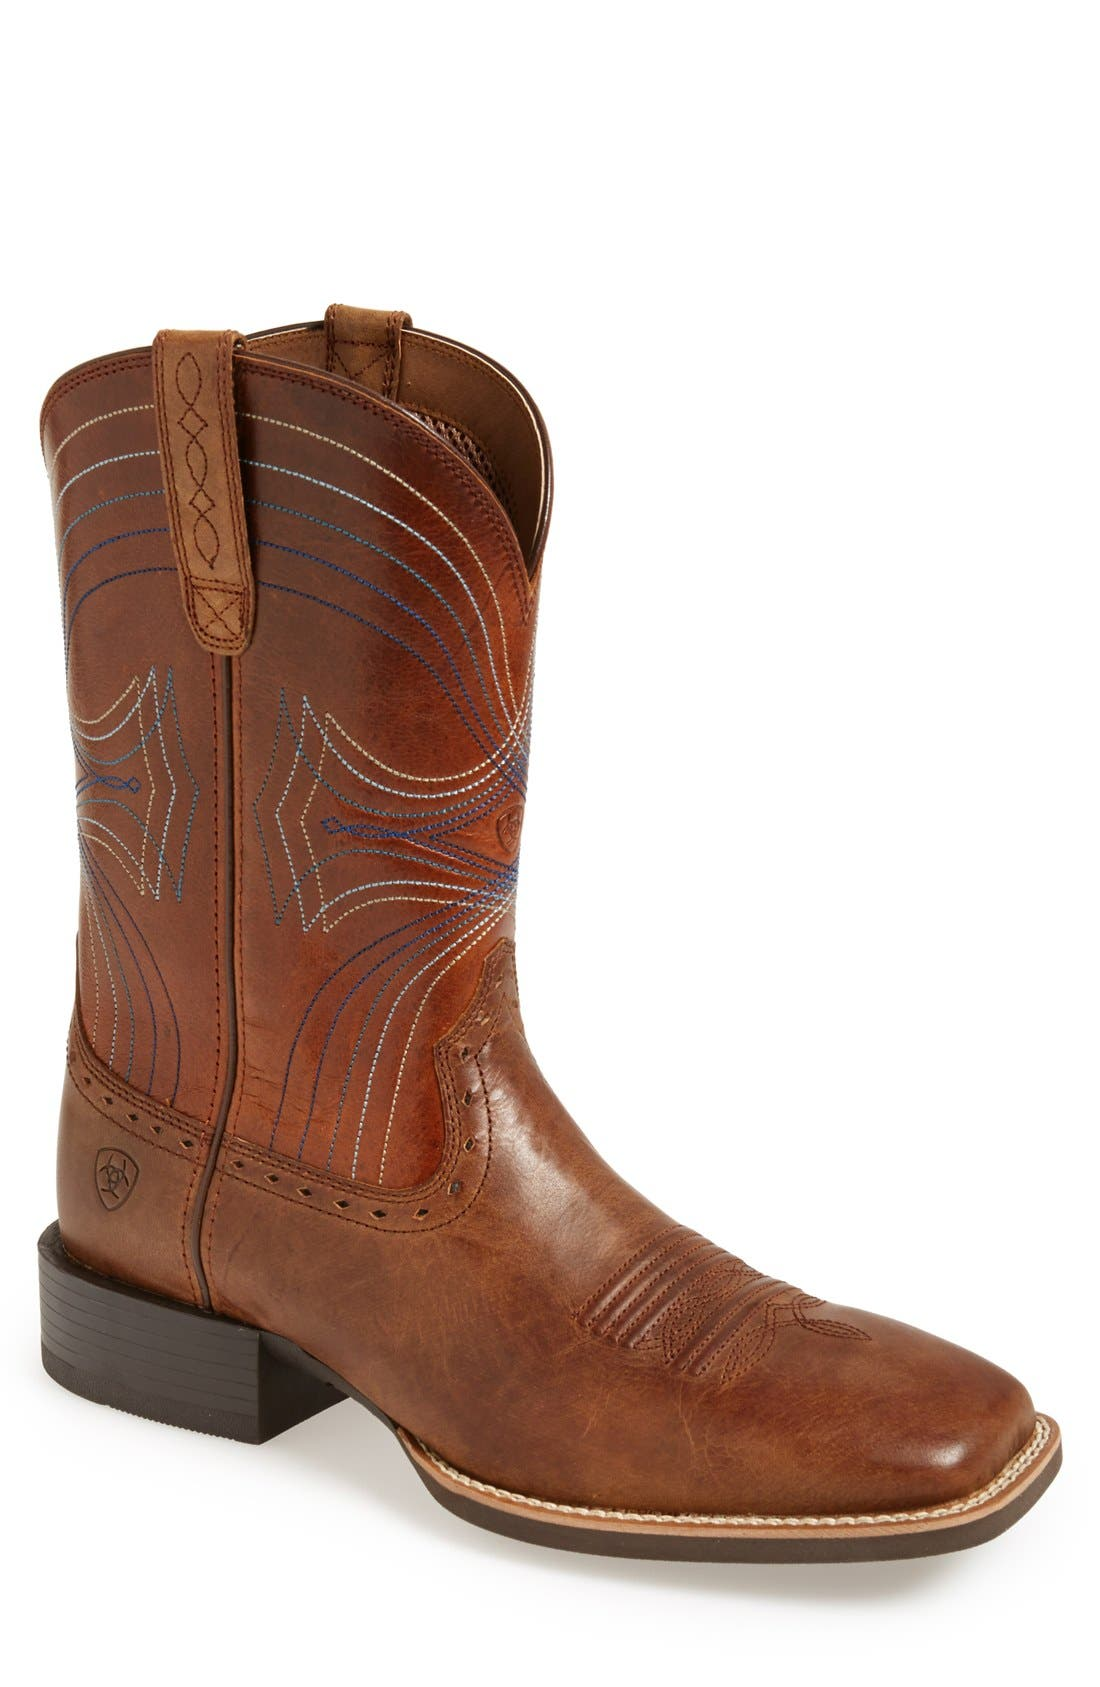 Alternate Image 1 Selected - Ariat 'Sport' Leather Cowboy Boot (Men)